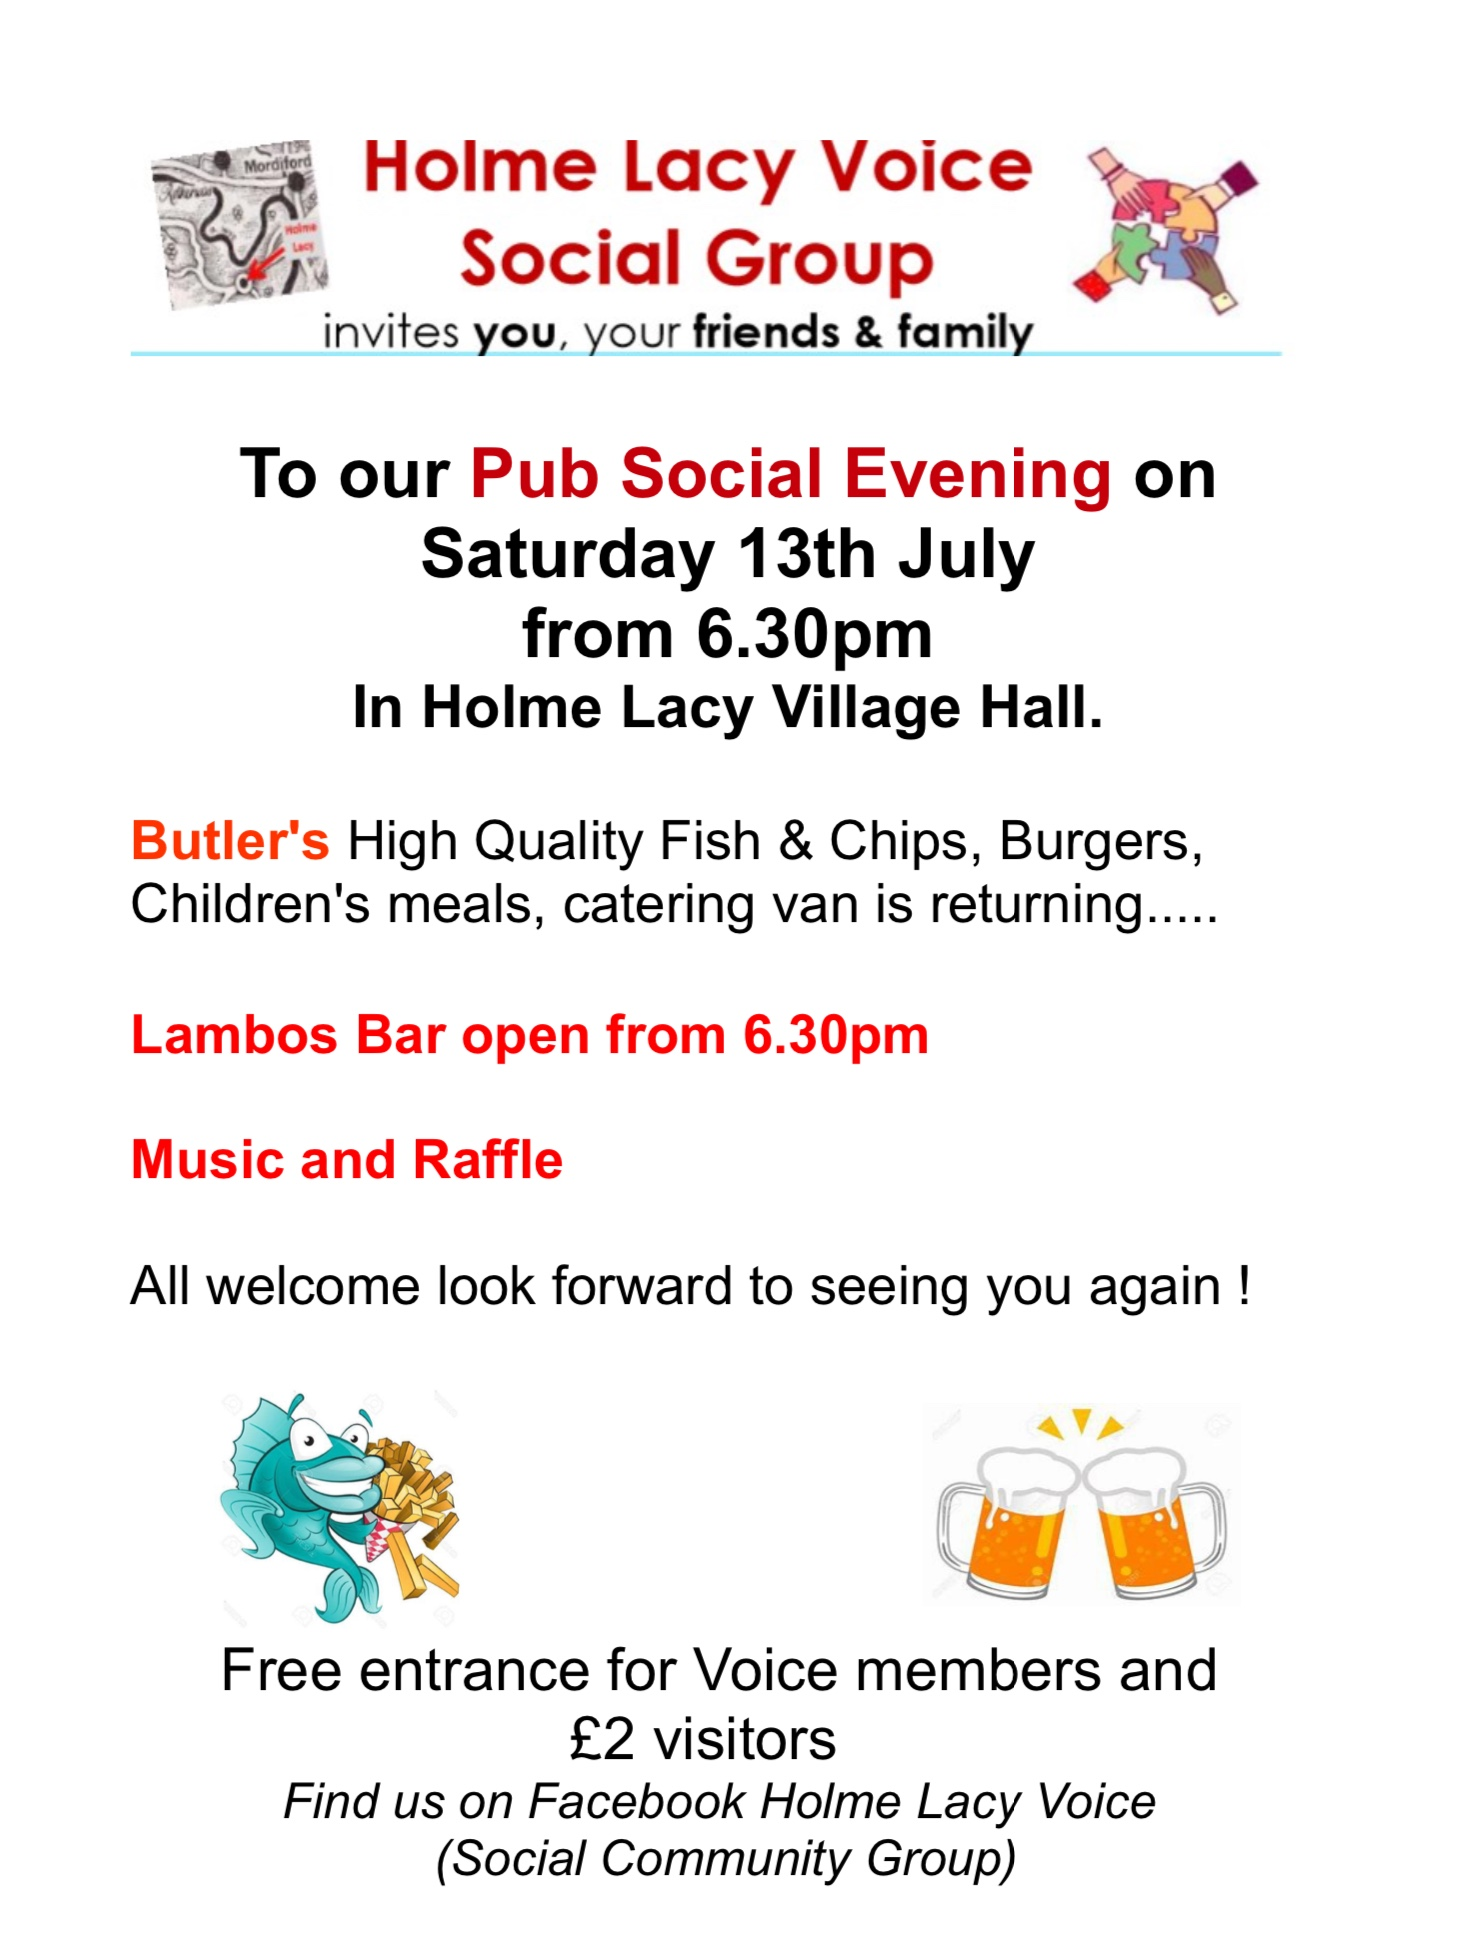 Fish & chip evening organised by Holme Lacy Voice